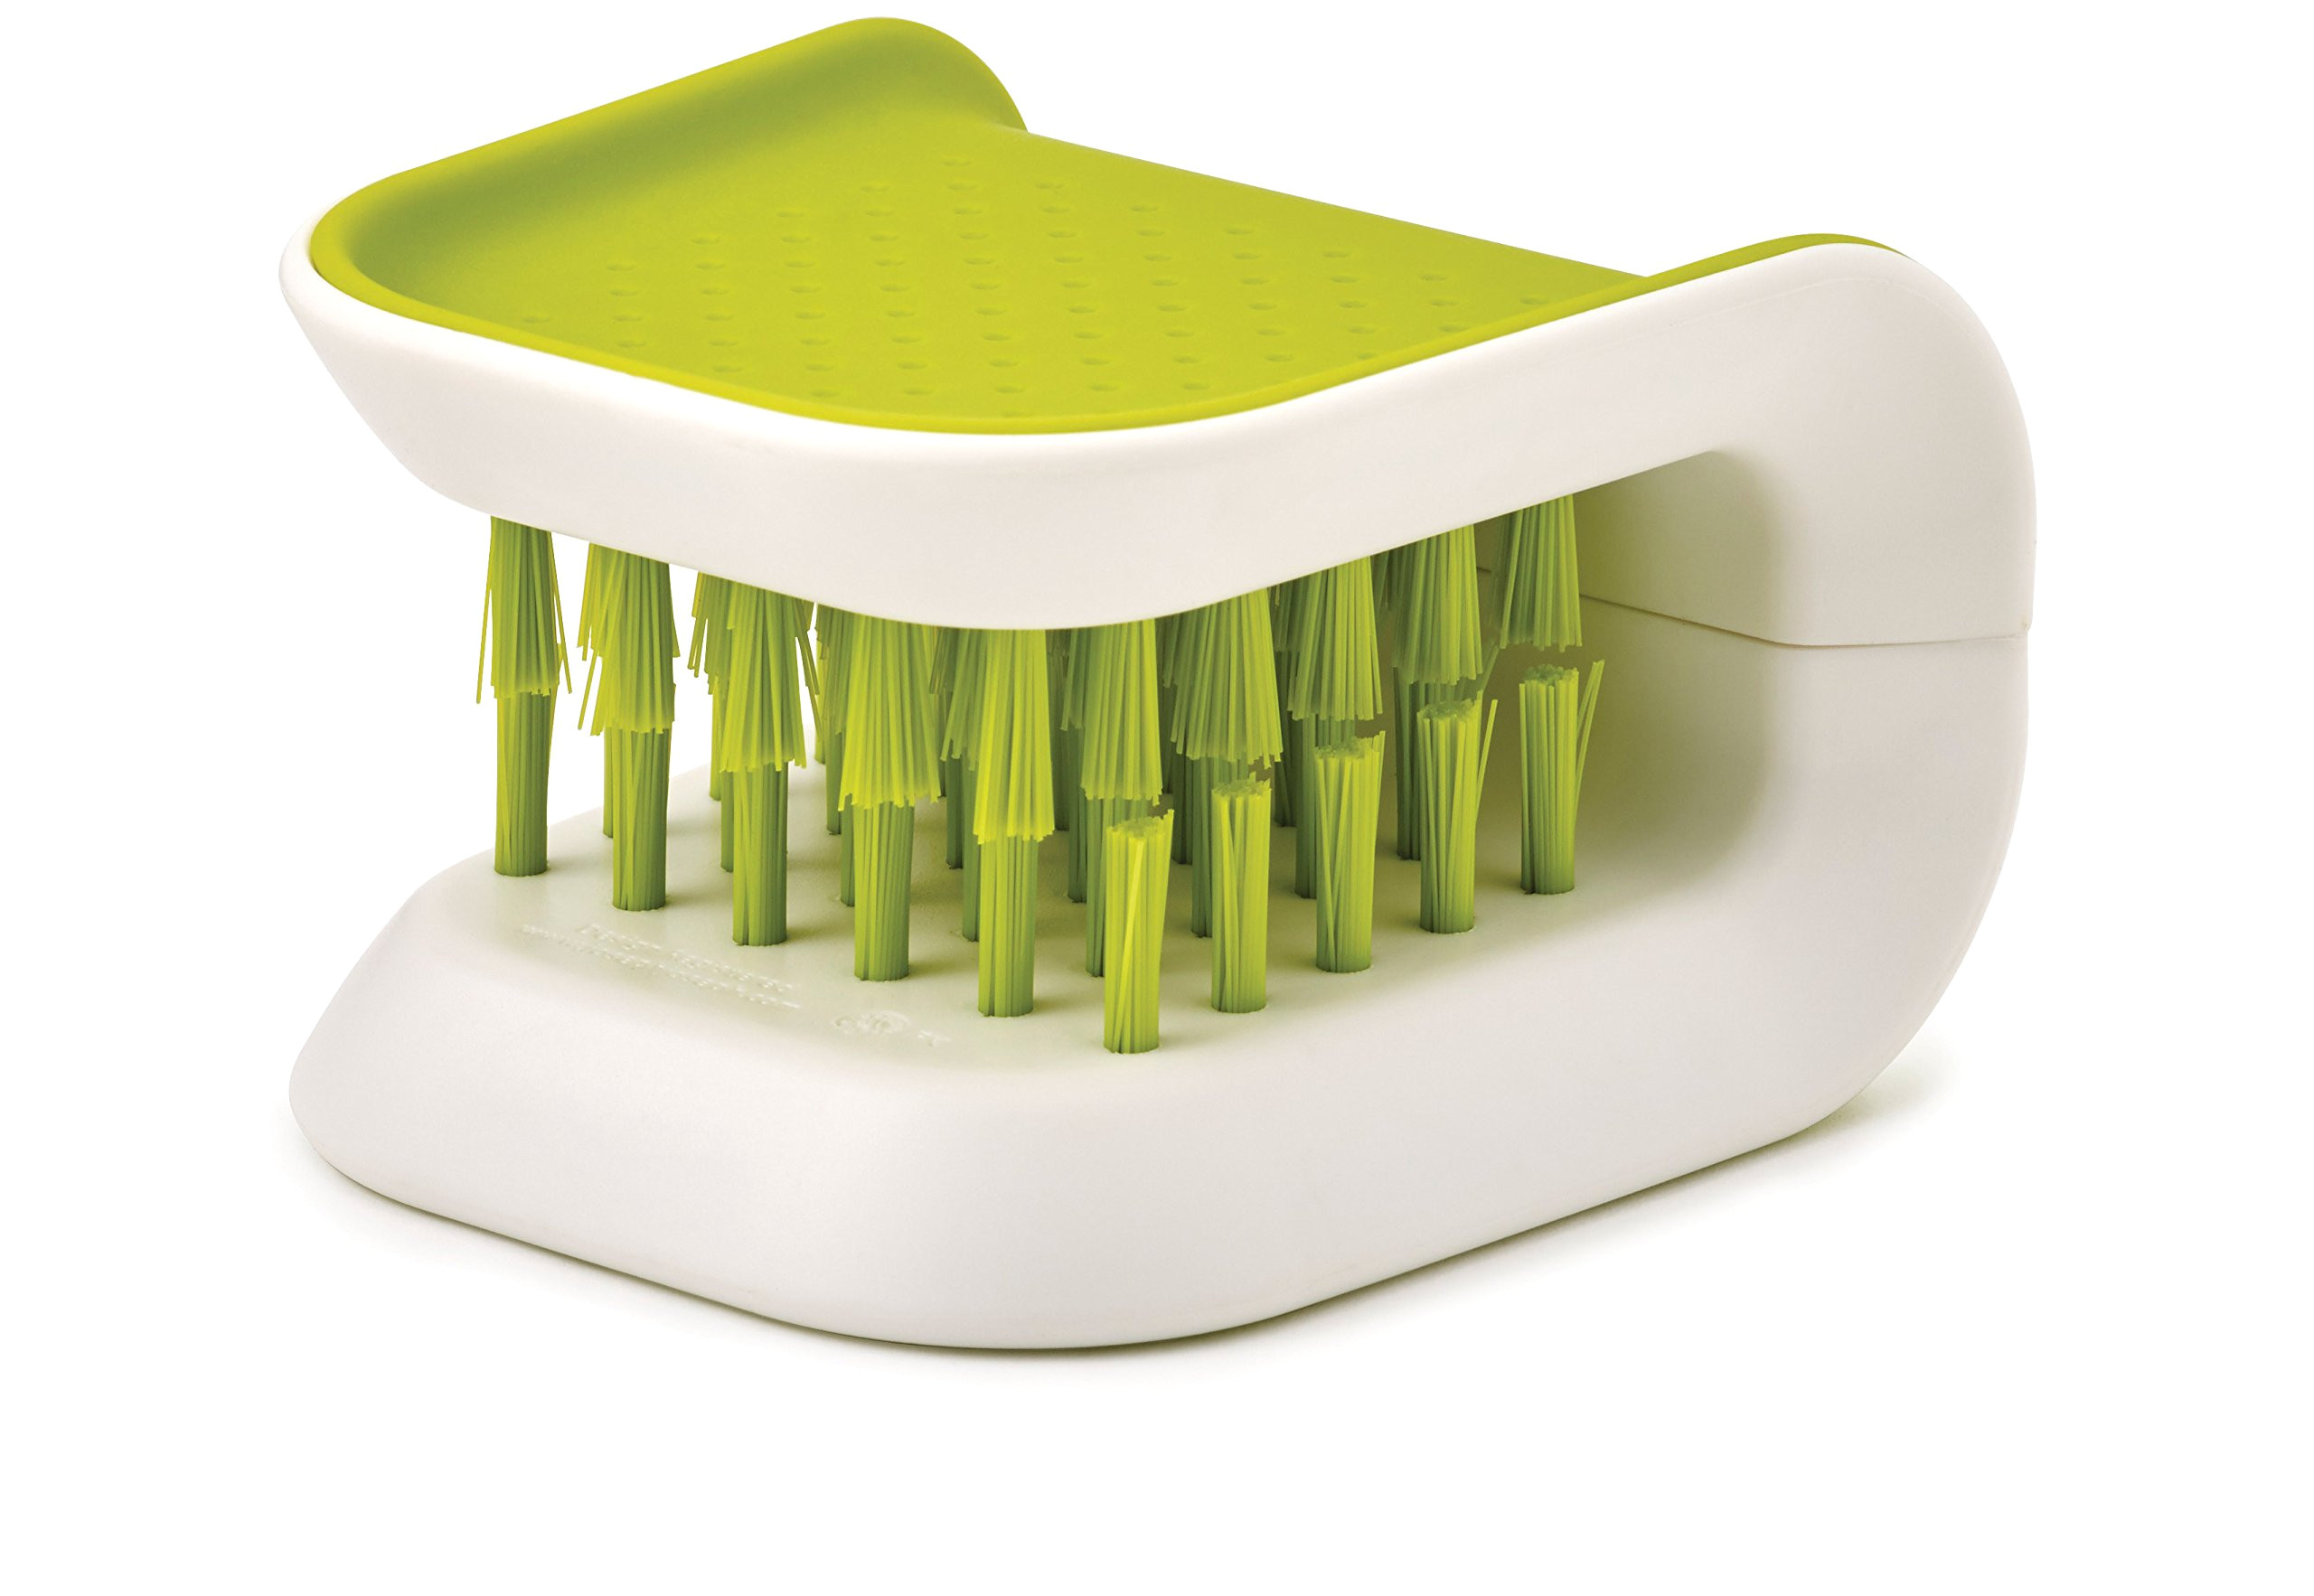 amazon com joseph joseph 85105 bladebrush knife and cutlery cleaner brush bristle scrub kitchen washing non slip one size green kitchen dining